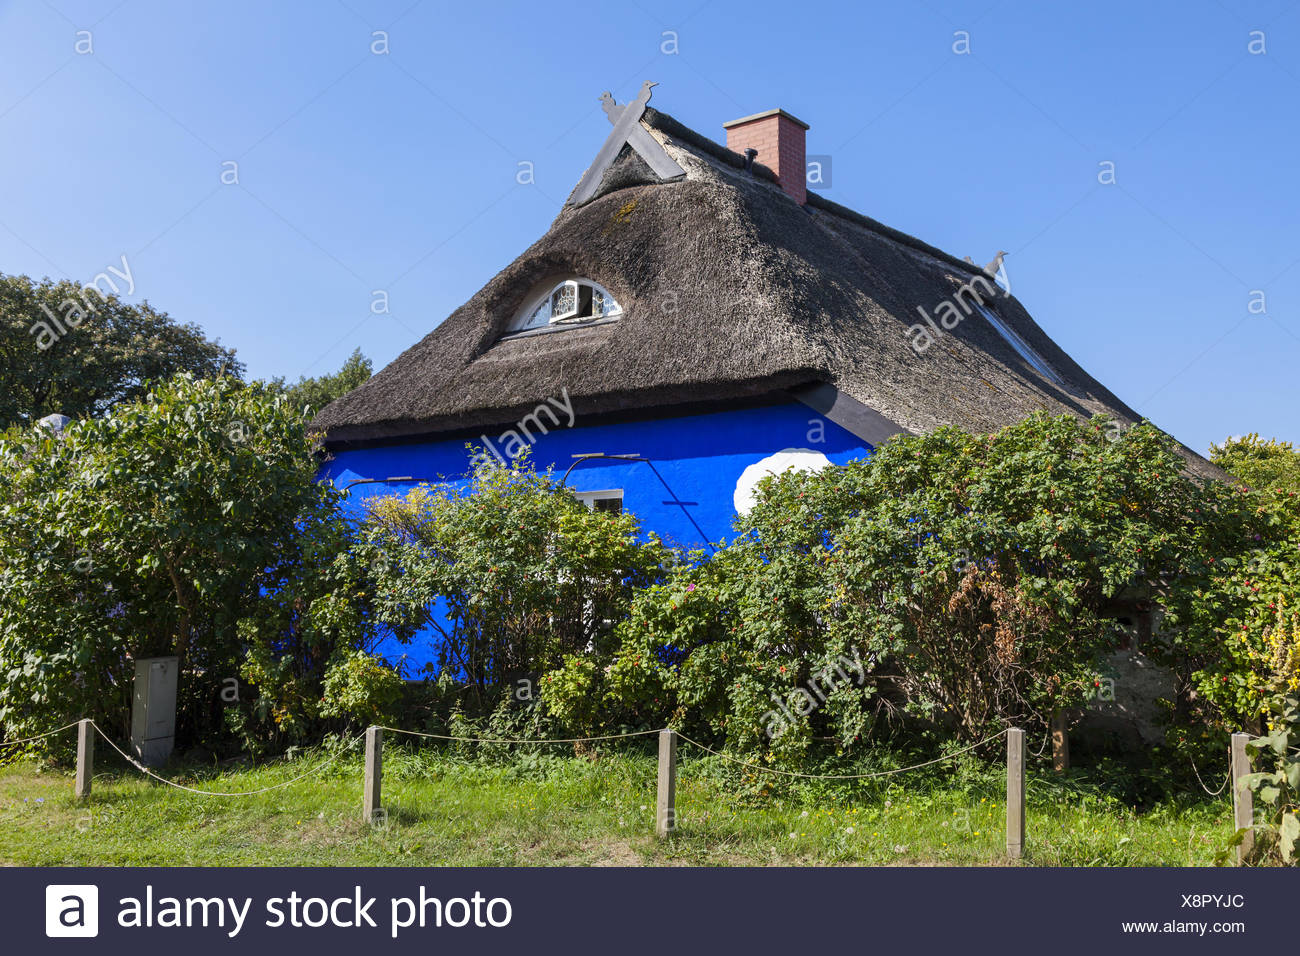 The Blue Barn on Hiddensee Stock Photo